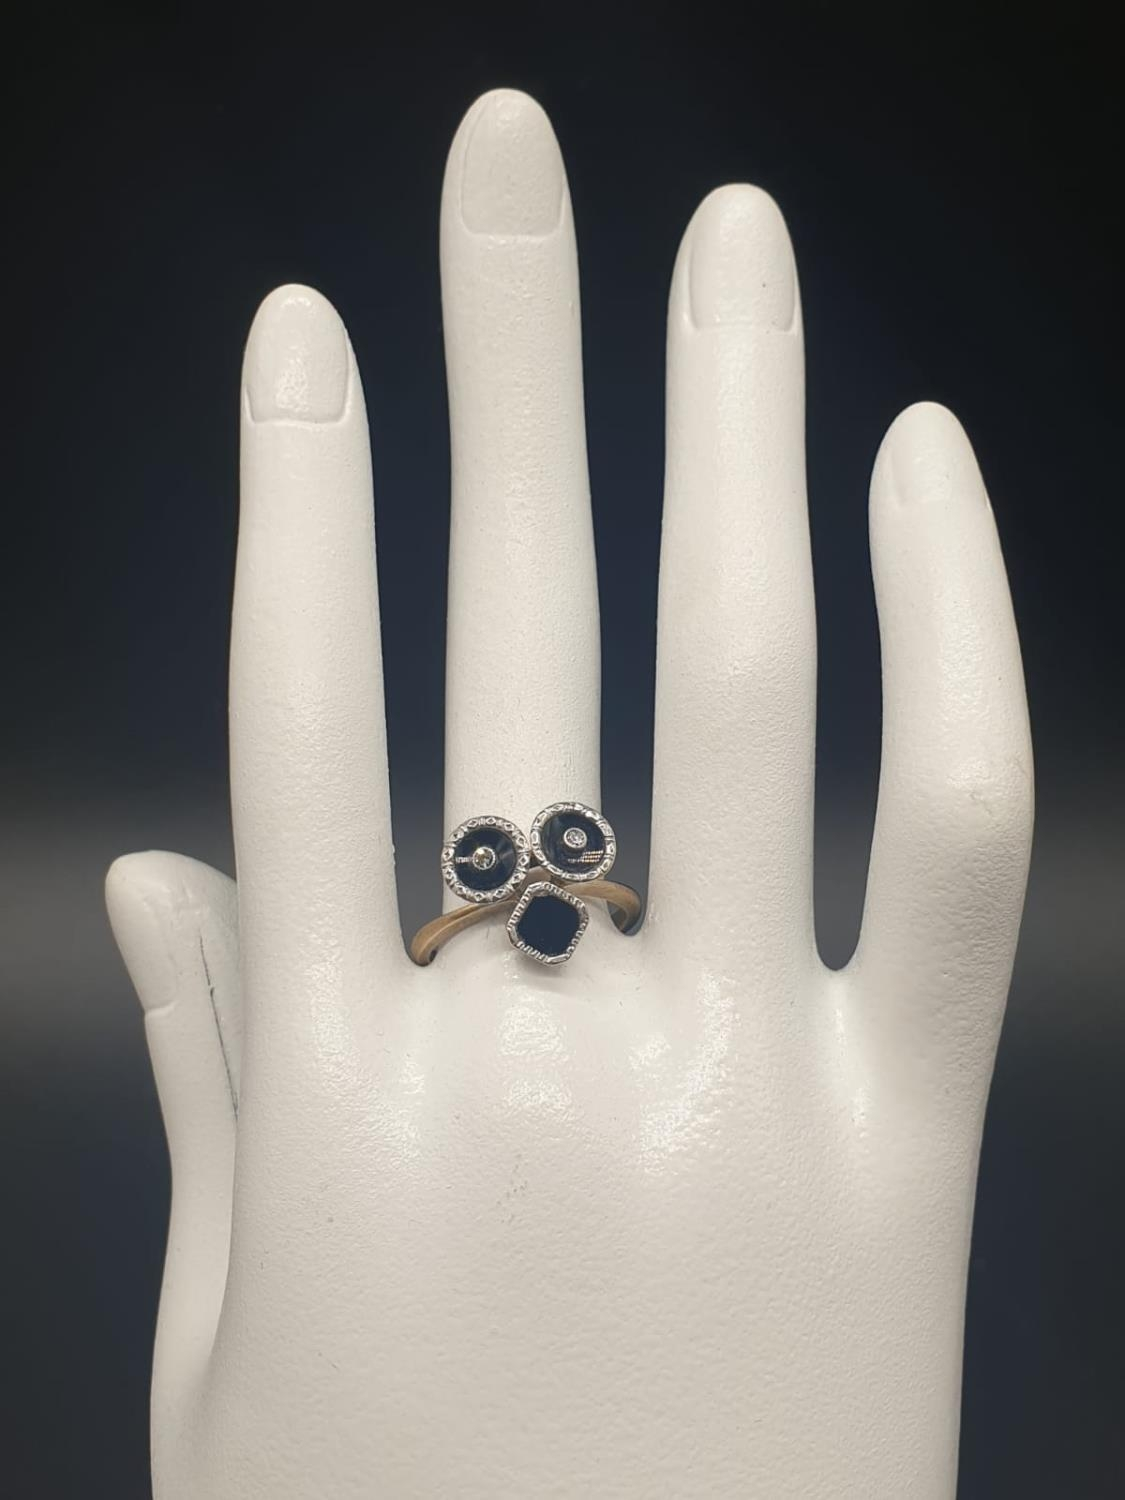 A 9K GOLD RING WITH BLACK ENAMEL AND DIAMONDS USED TO FORM THE SHAPE OF A FACE. 3.3gms size O - Image 6 of 6